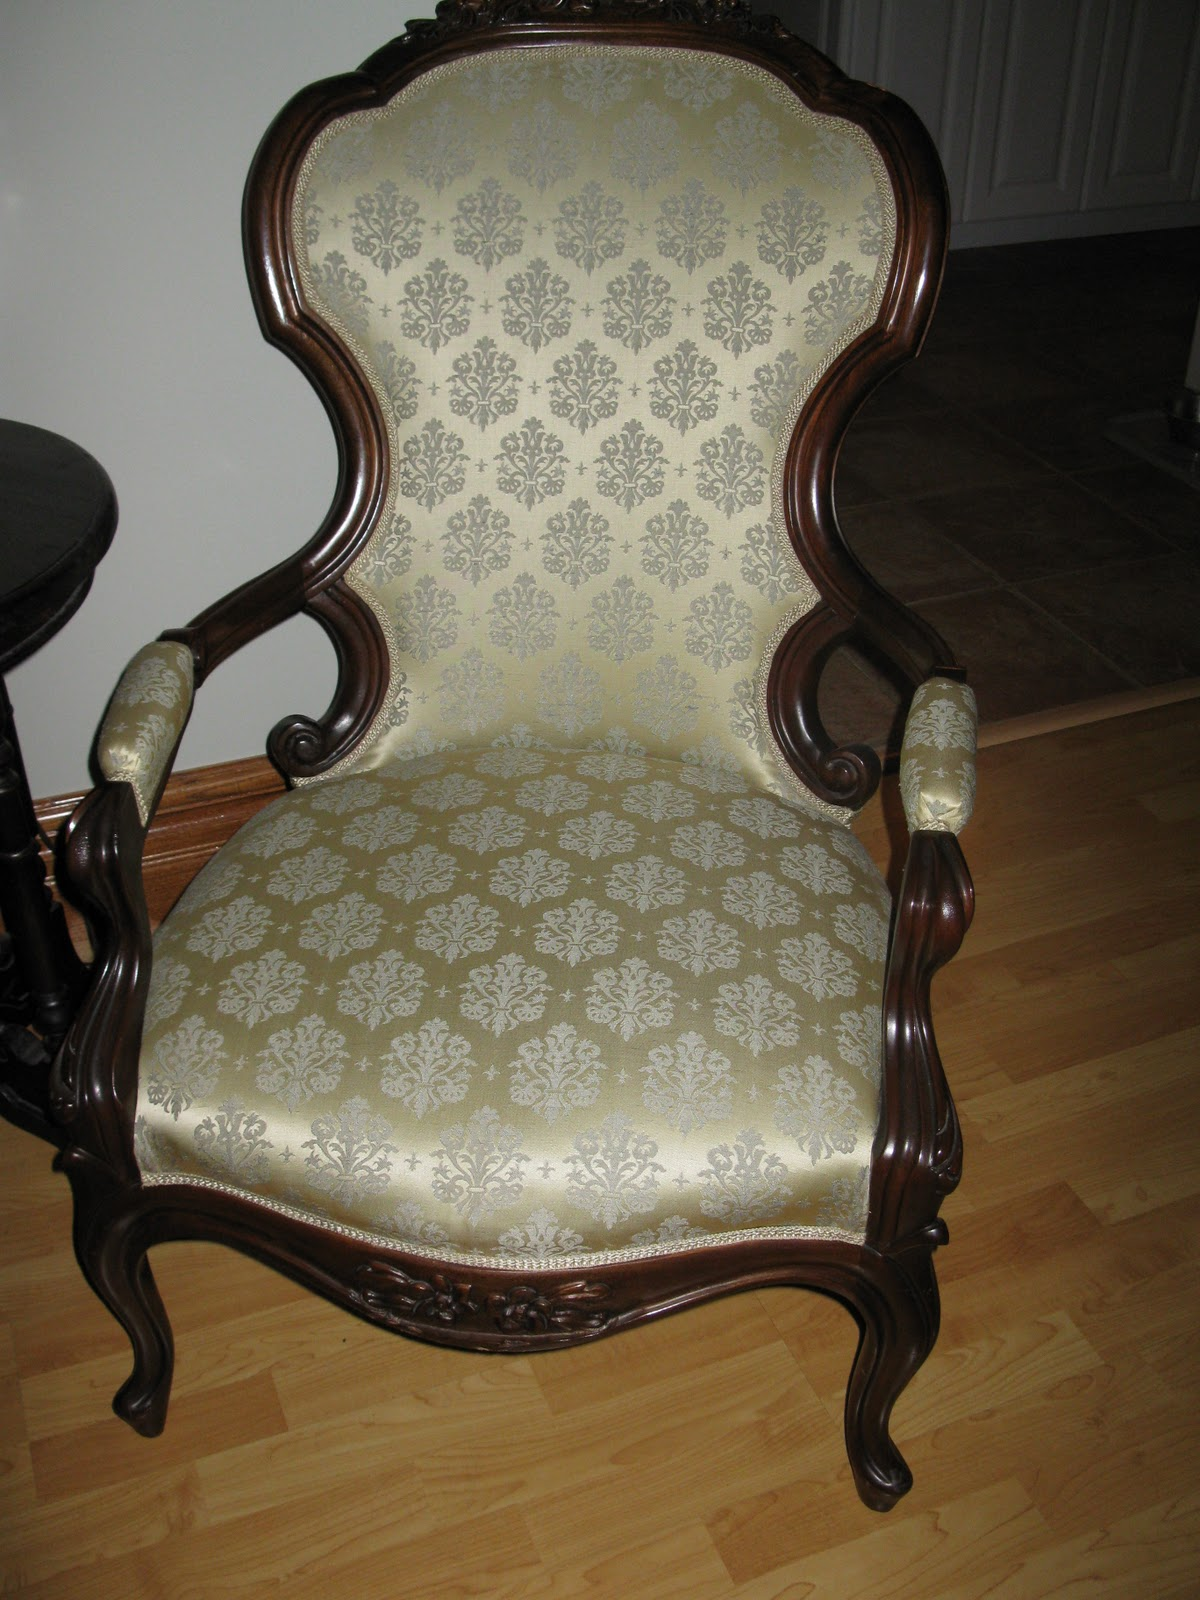 Civil War Era Parlor Chairs - Antique Hunter: Civil War Era Parlor Chairs